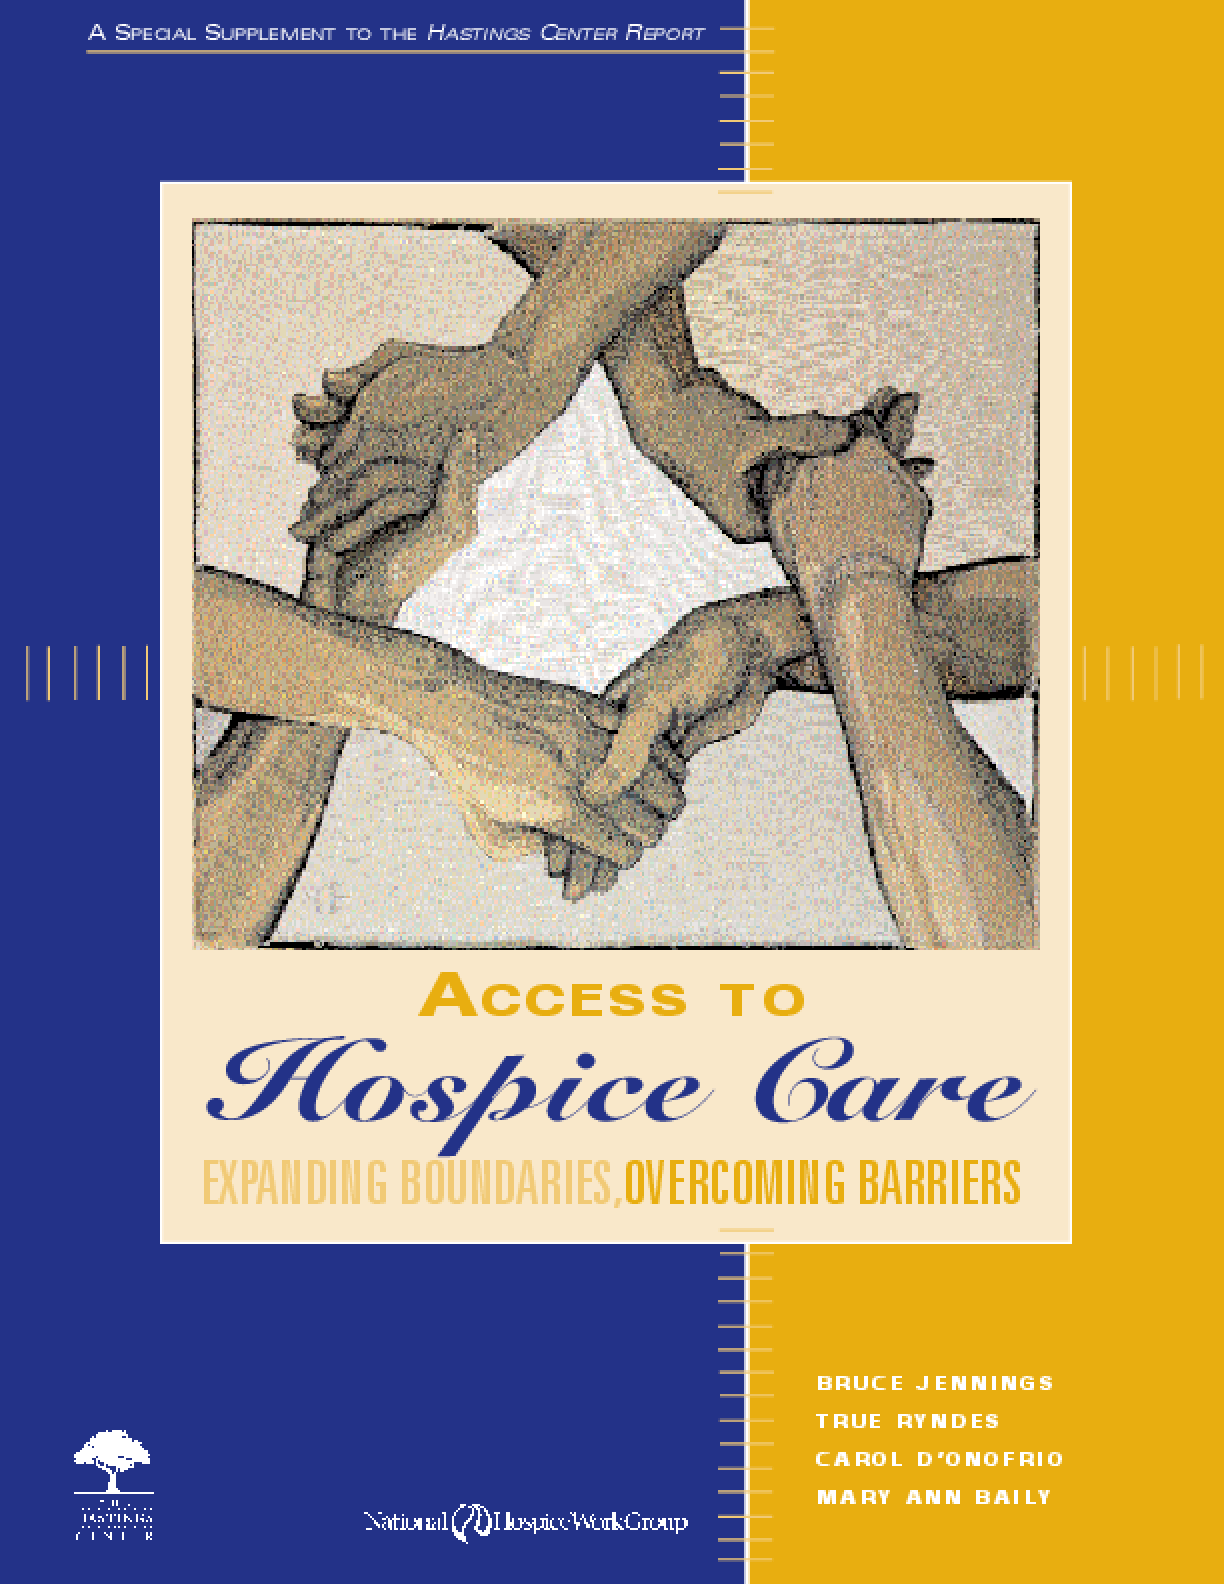 Access to Hospice Care: Expanding Boundaries, Overcoming Barriers